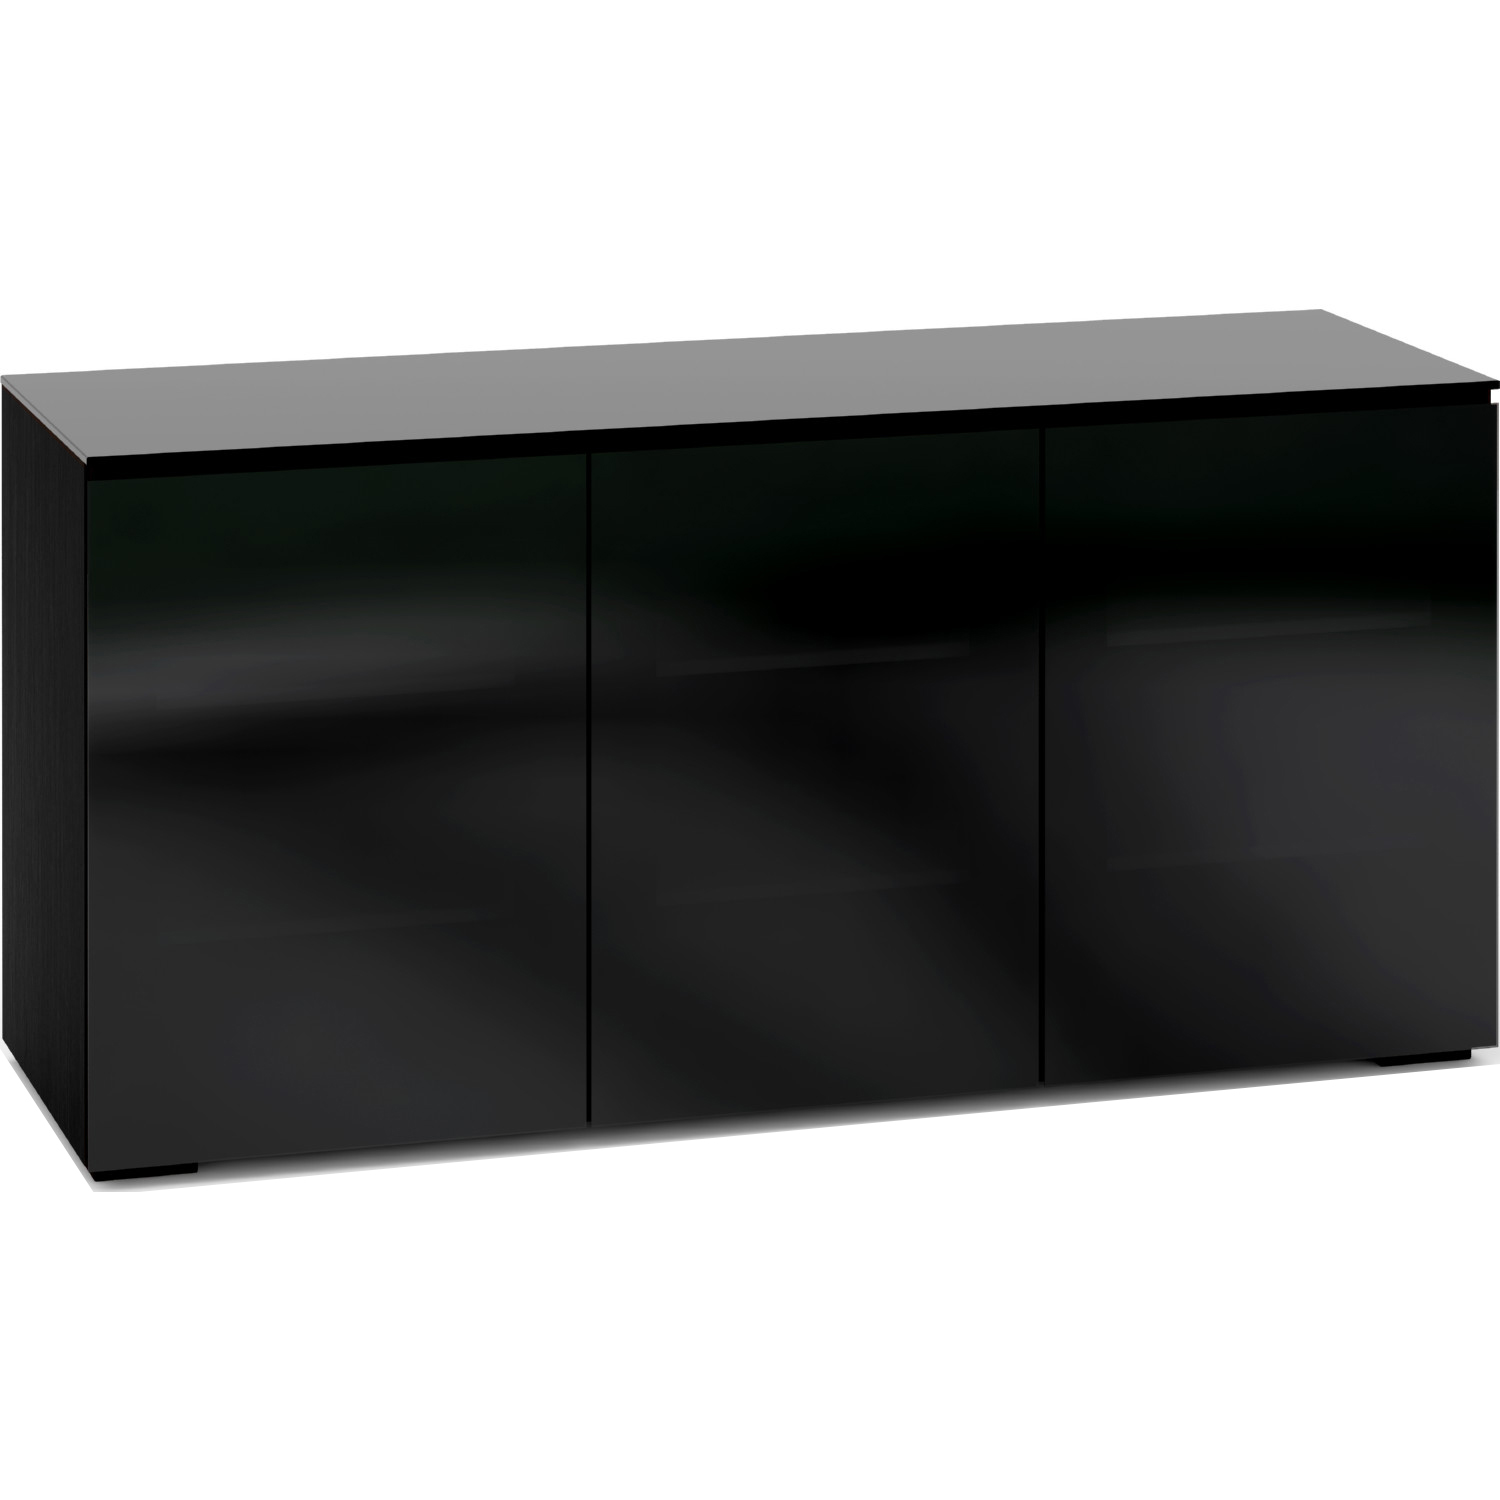 Salamander Designs C Os337 Bg Oslo 337 65 Extra Tall Tv Stand Cabinet In Black Oak W Smoked Black Glass Doors Top